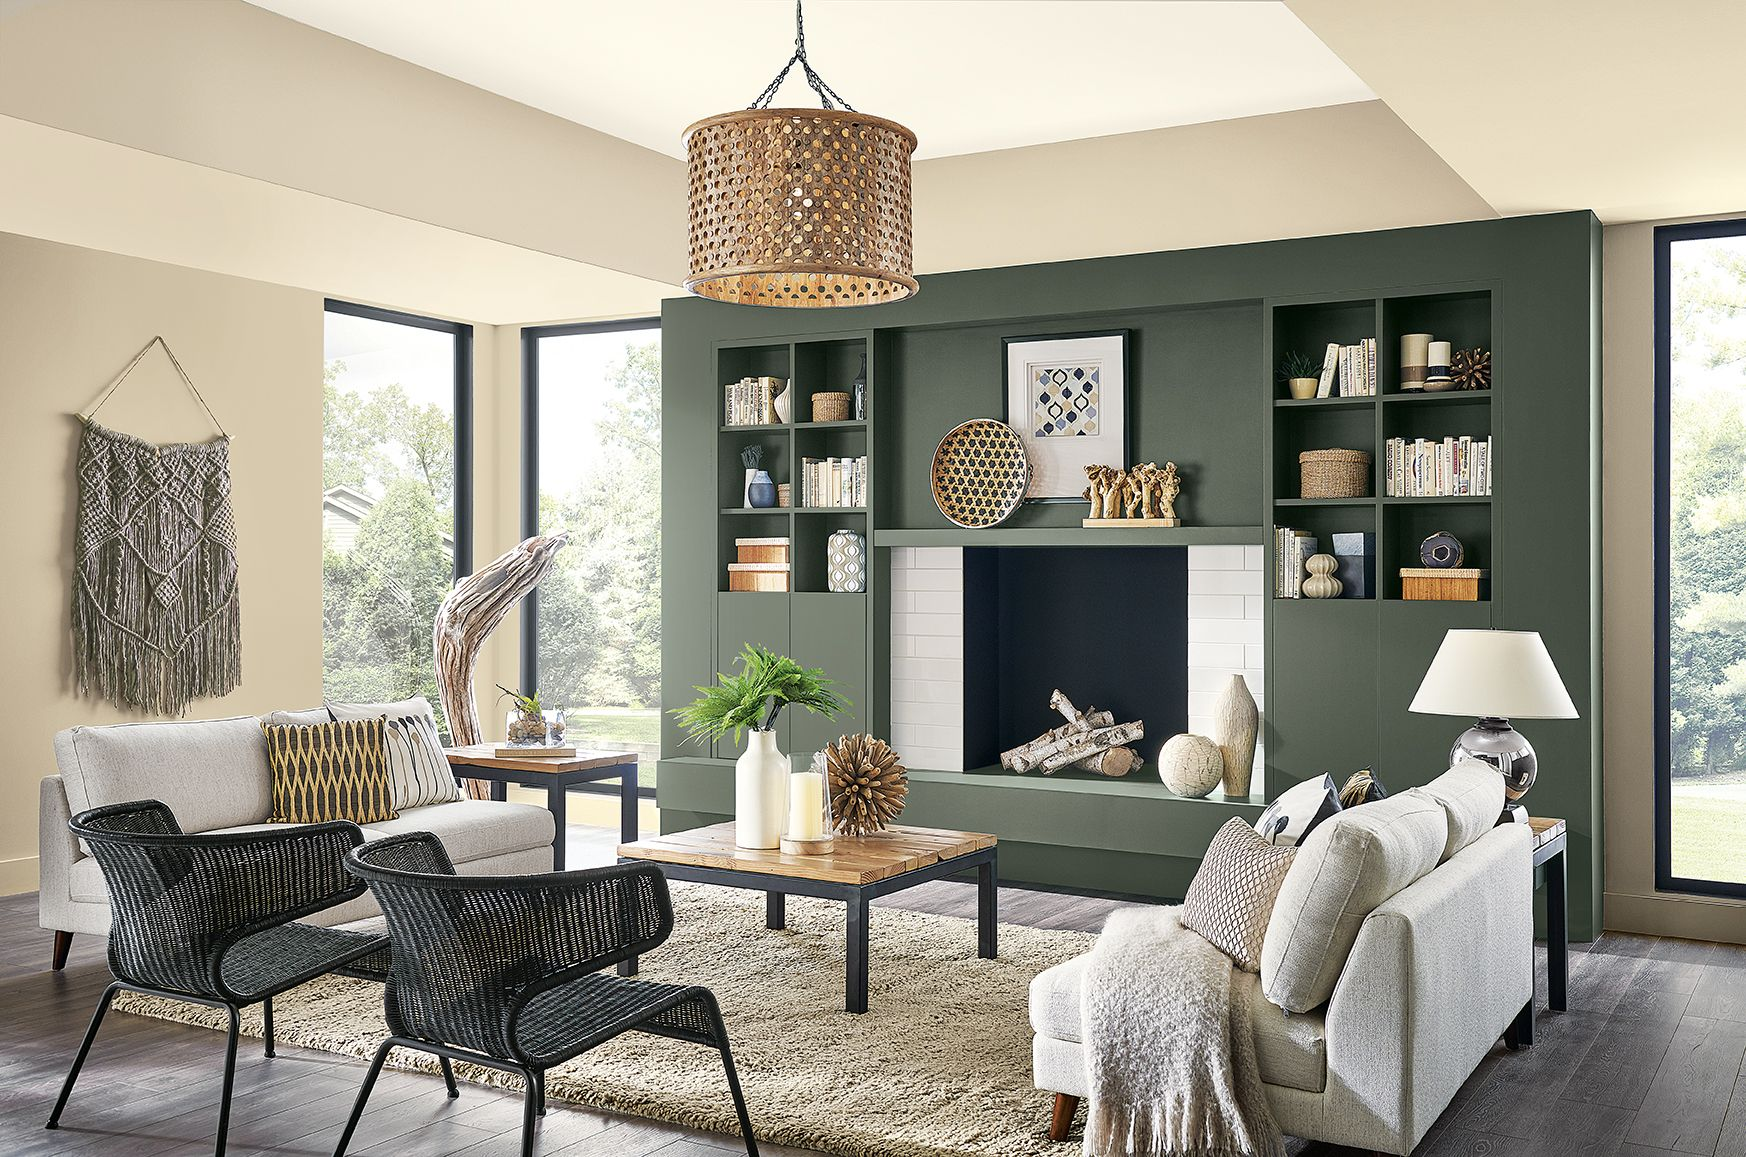 Paint color schemes living room #paint #color #schemes #living #room